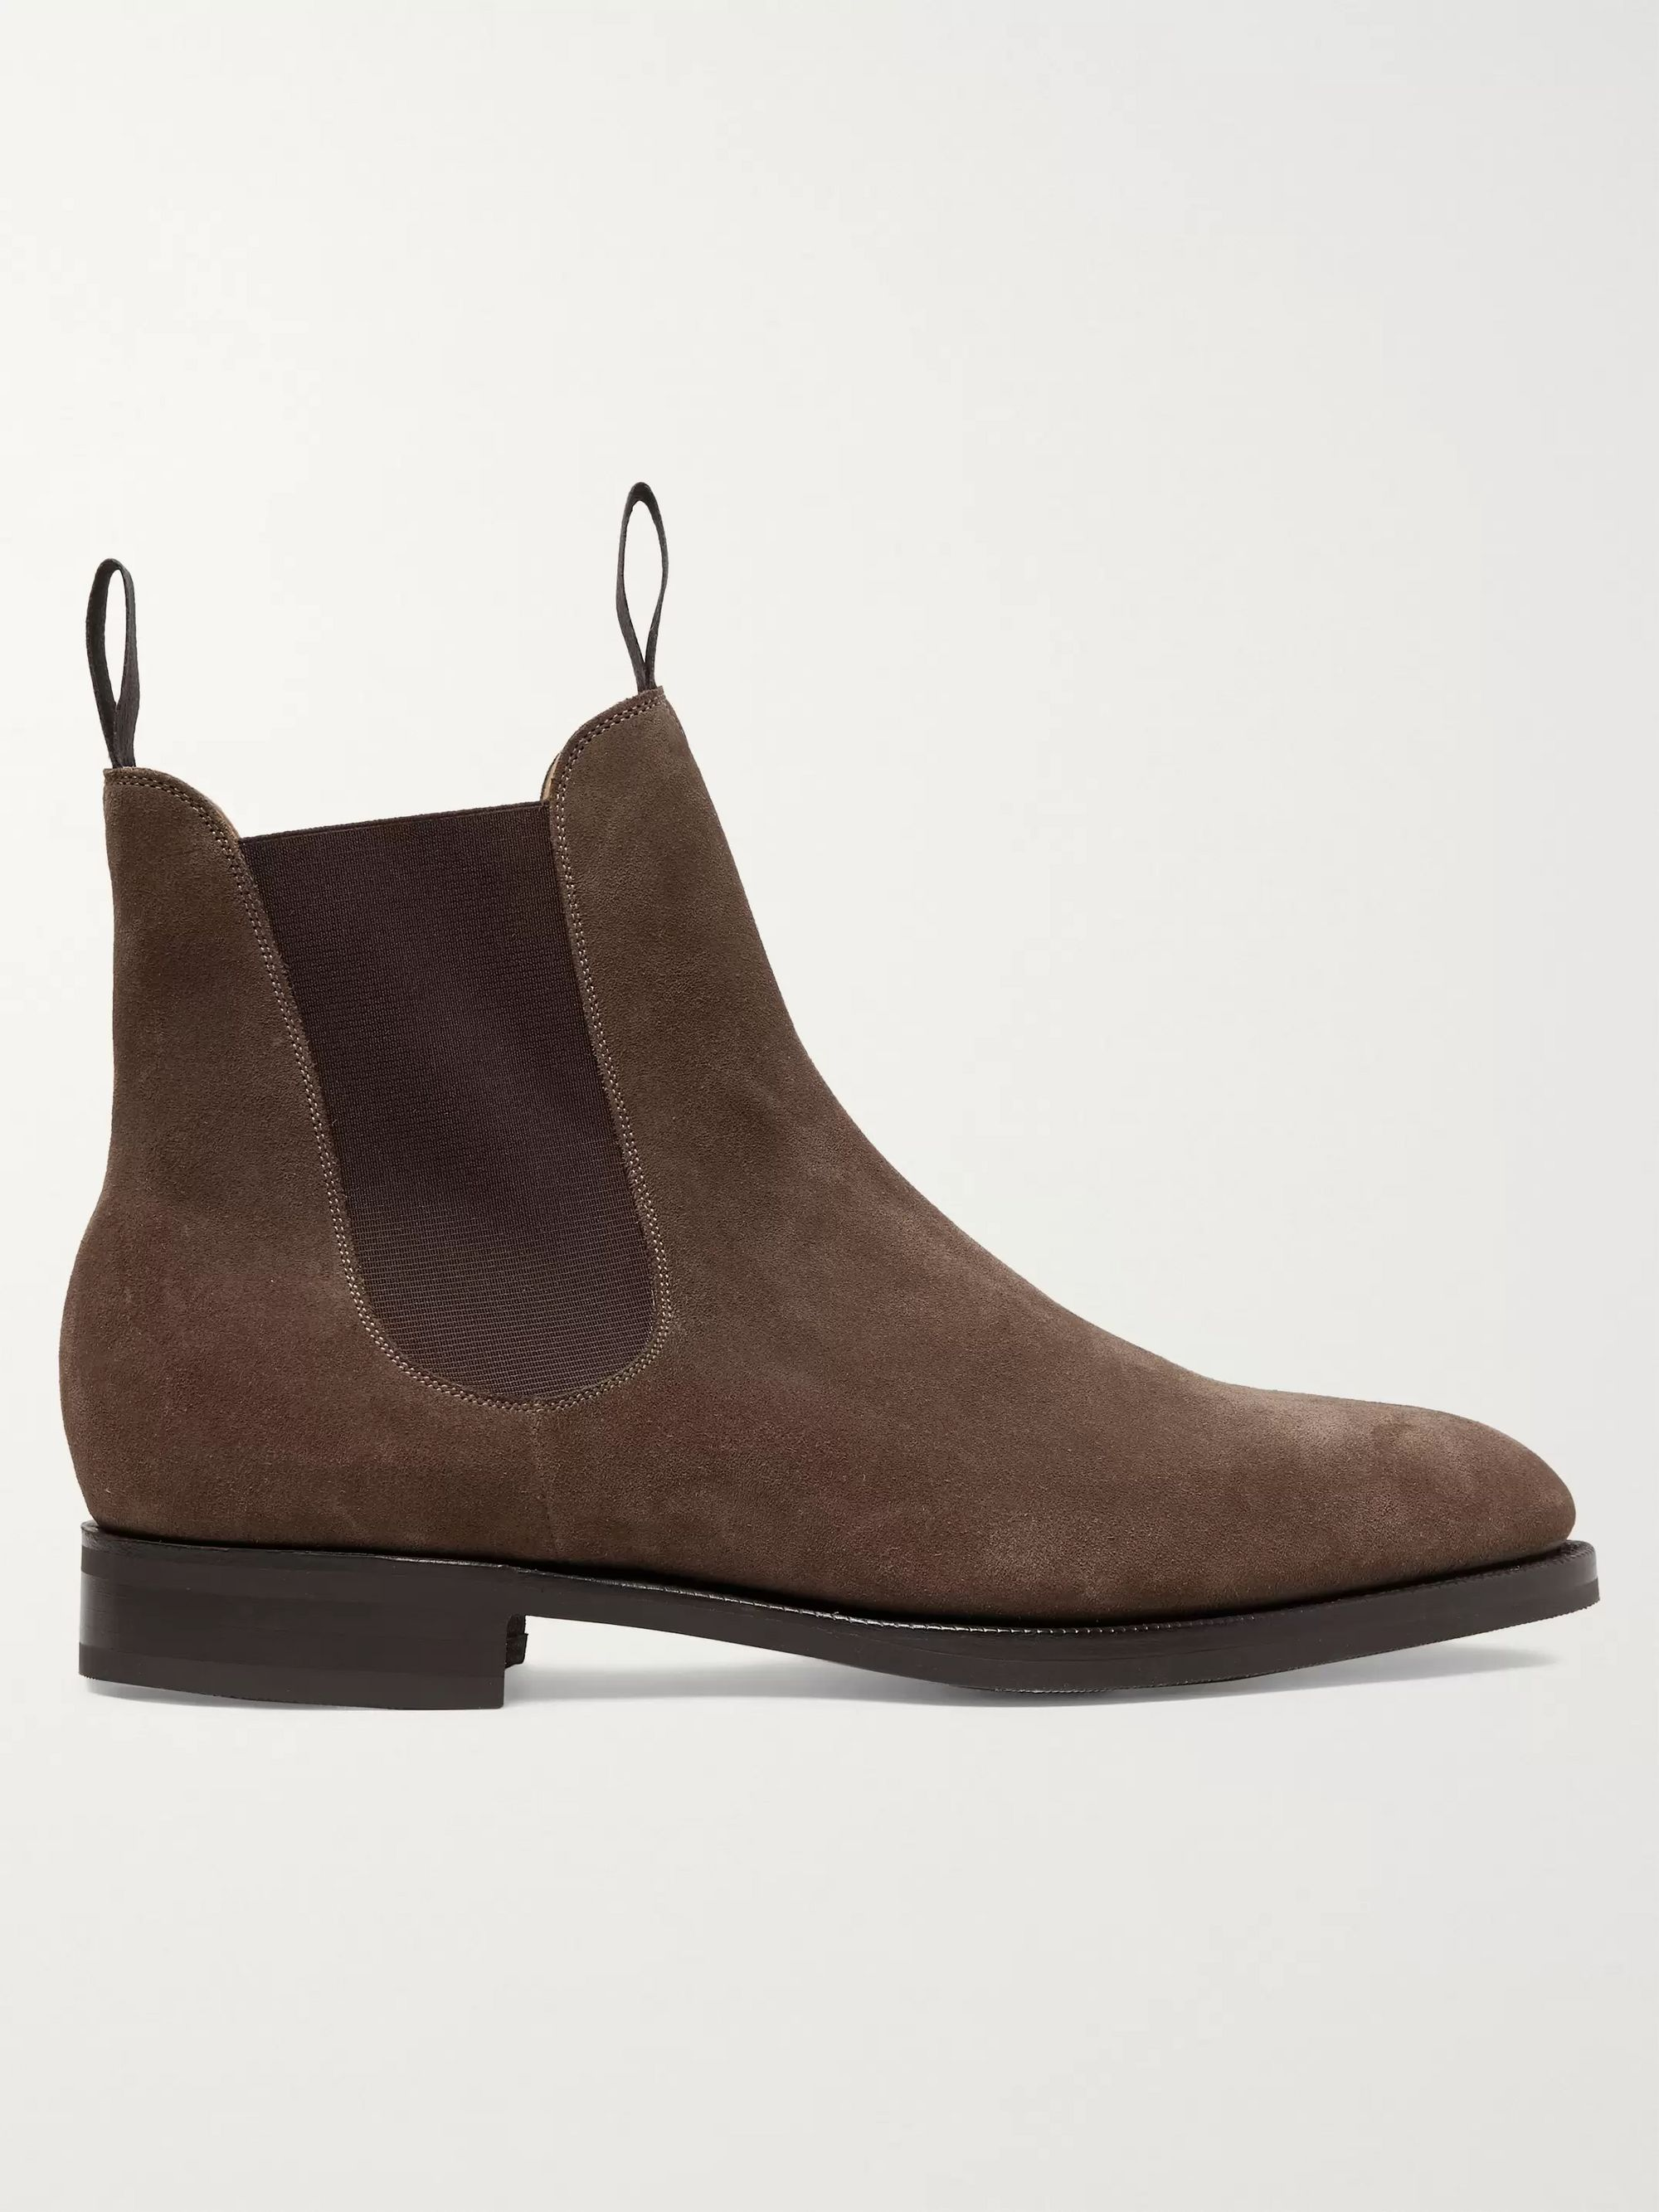 Edward Green Newmarket Textured-Leather Chelsea Boots